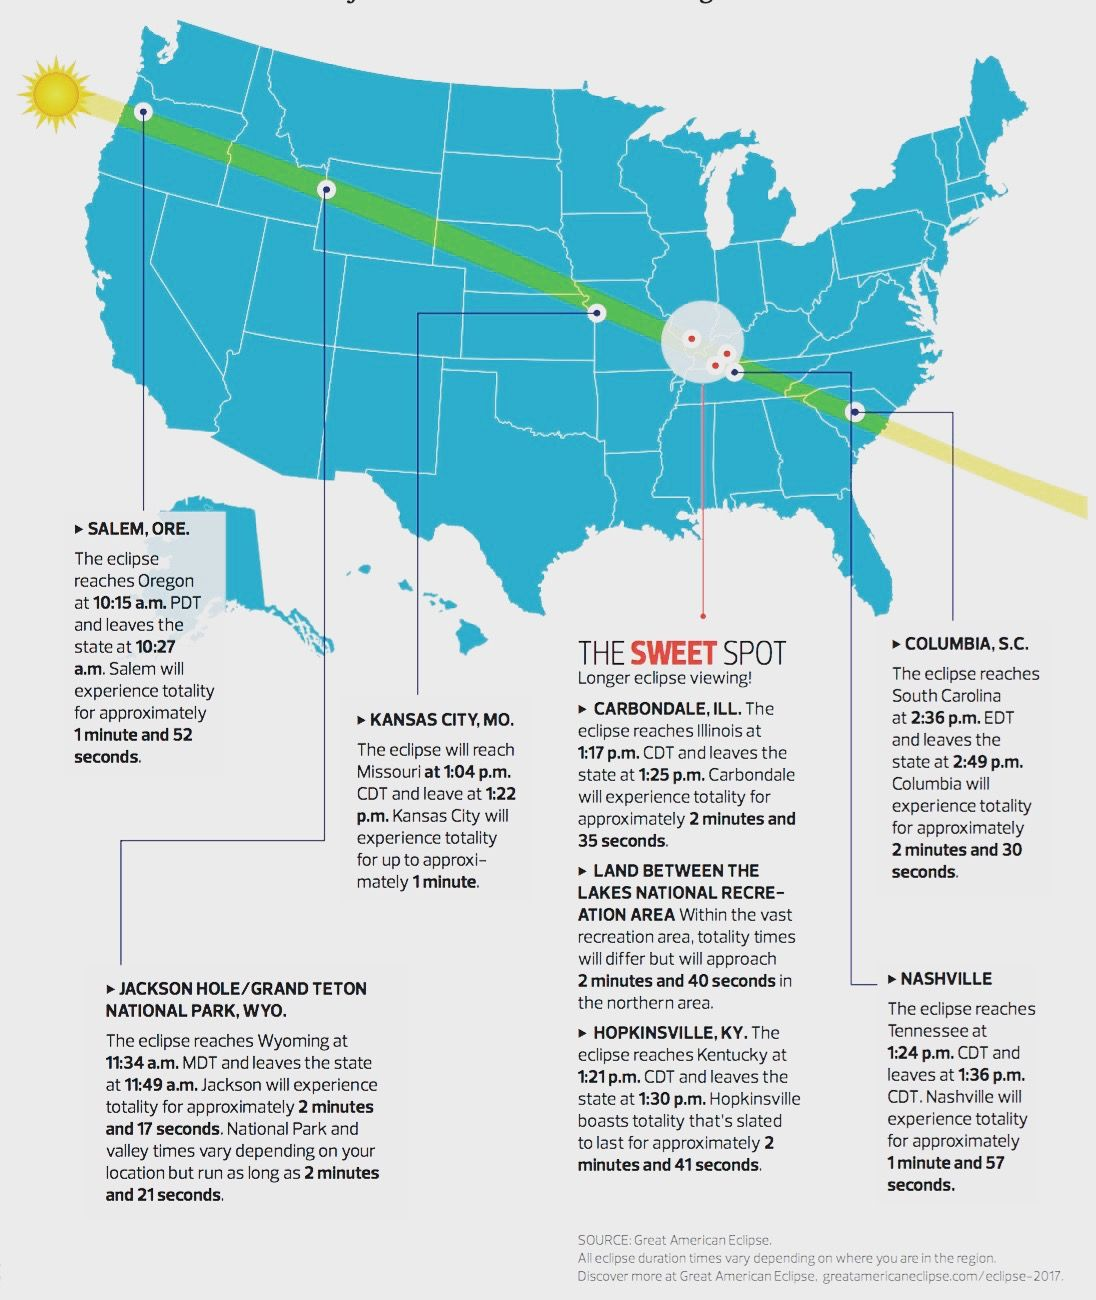 The First Total Solar Eclipse Touching The Continental United States